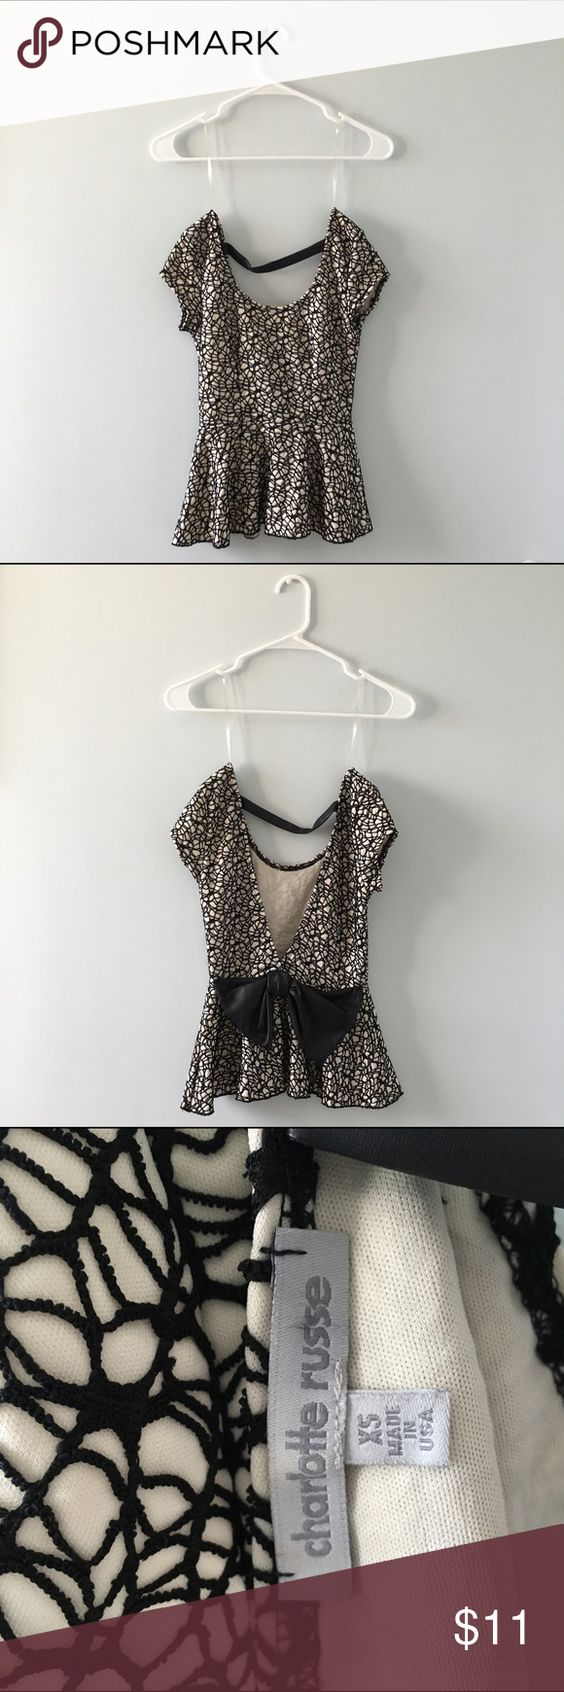 Charlotte Russe XS Black & White Formal Top w Bow Only worn once in brand new condition! This top is so gorgeous for any event. ⚡️Get it with fast shipping⚡️ Charlotte Russe Tops Tunics